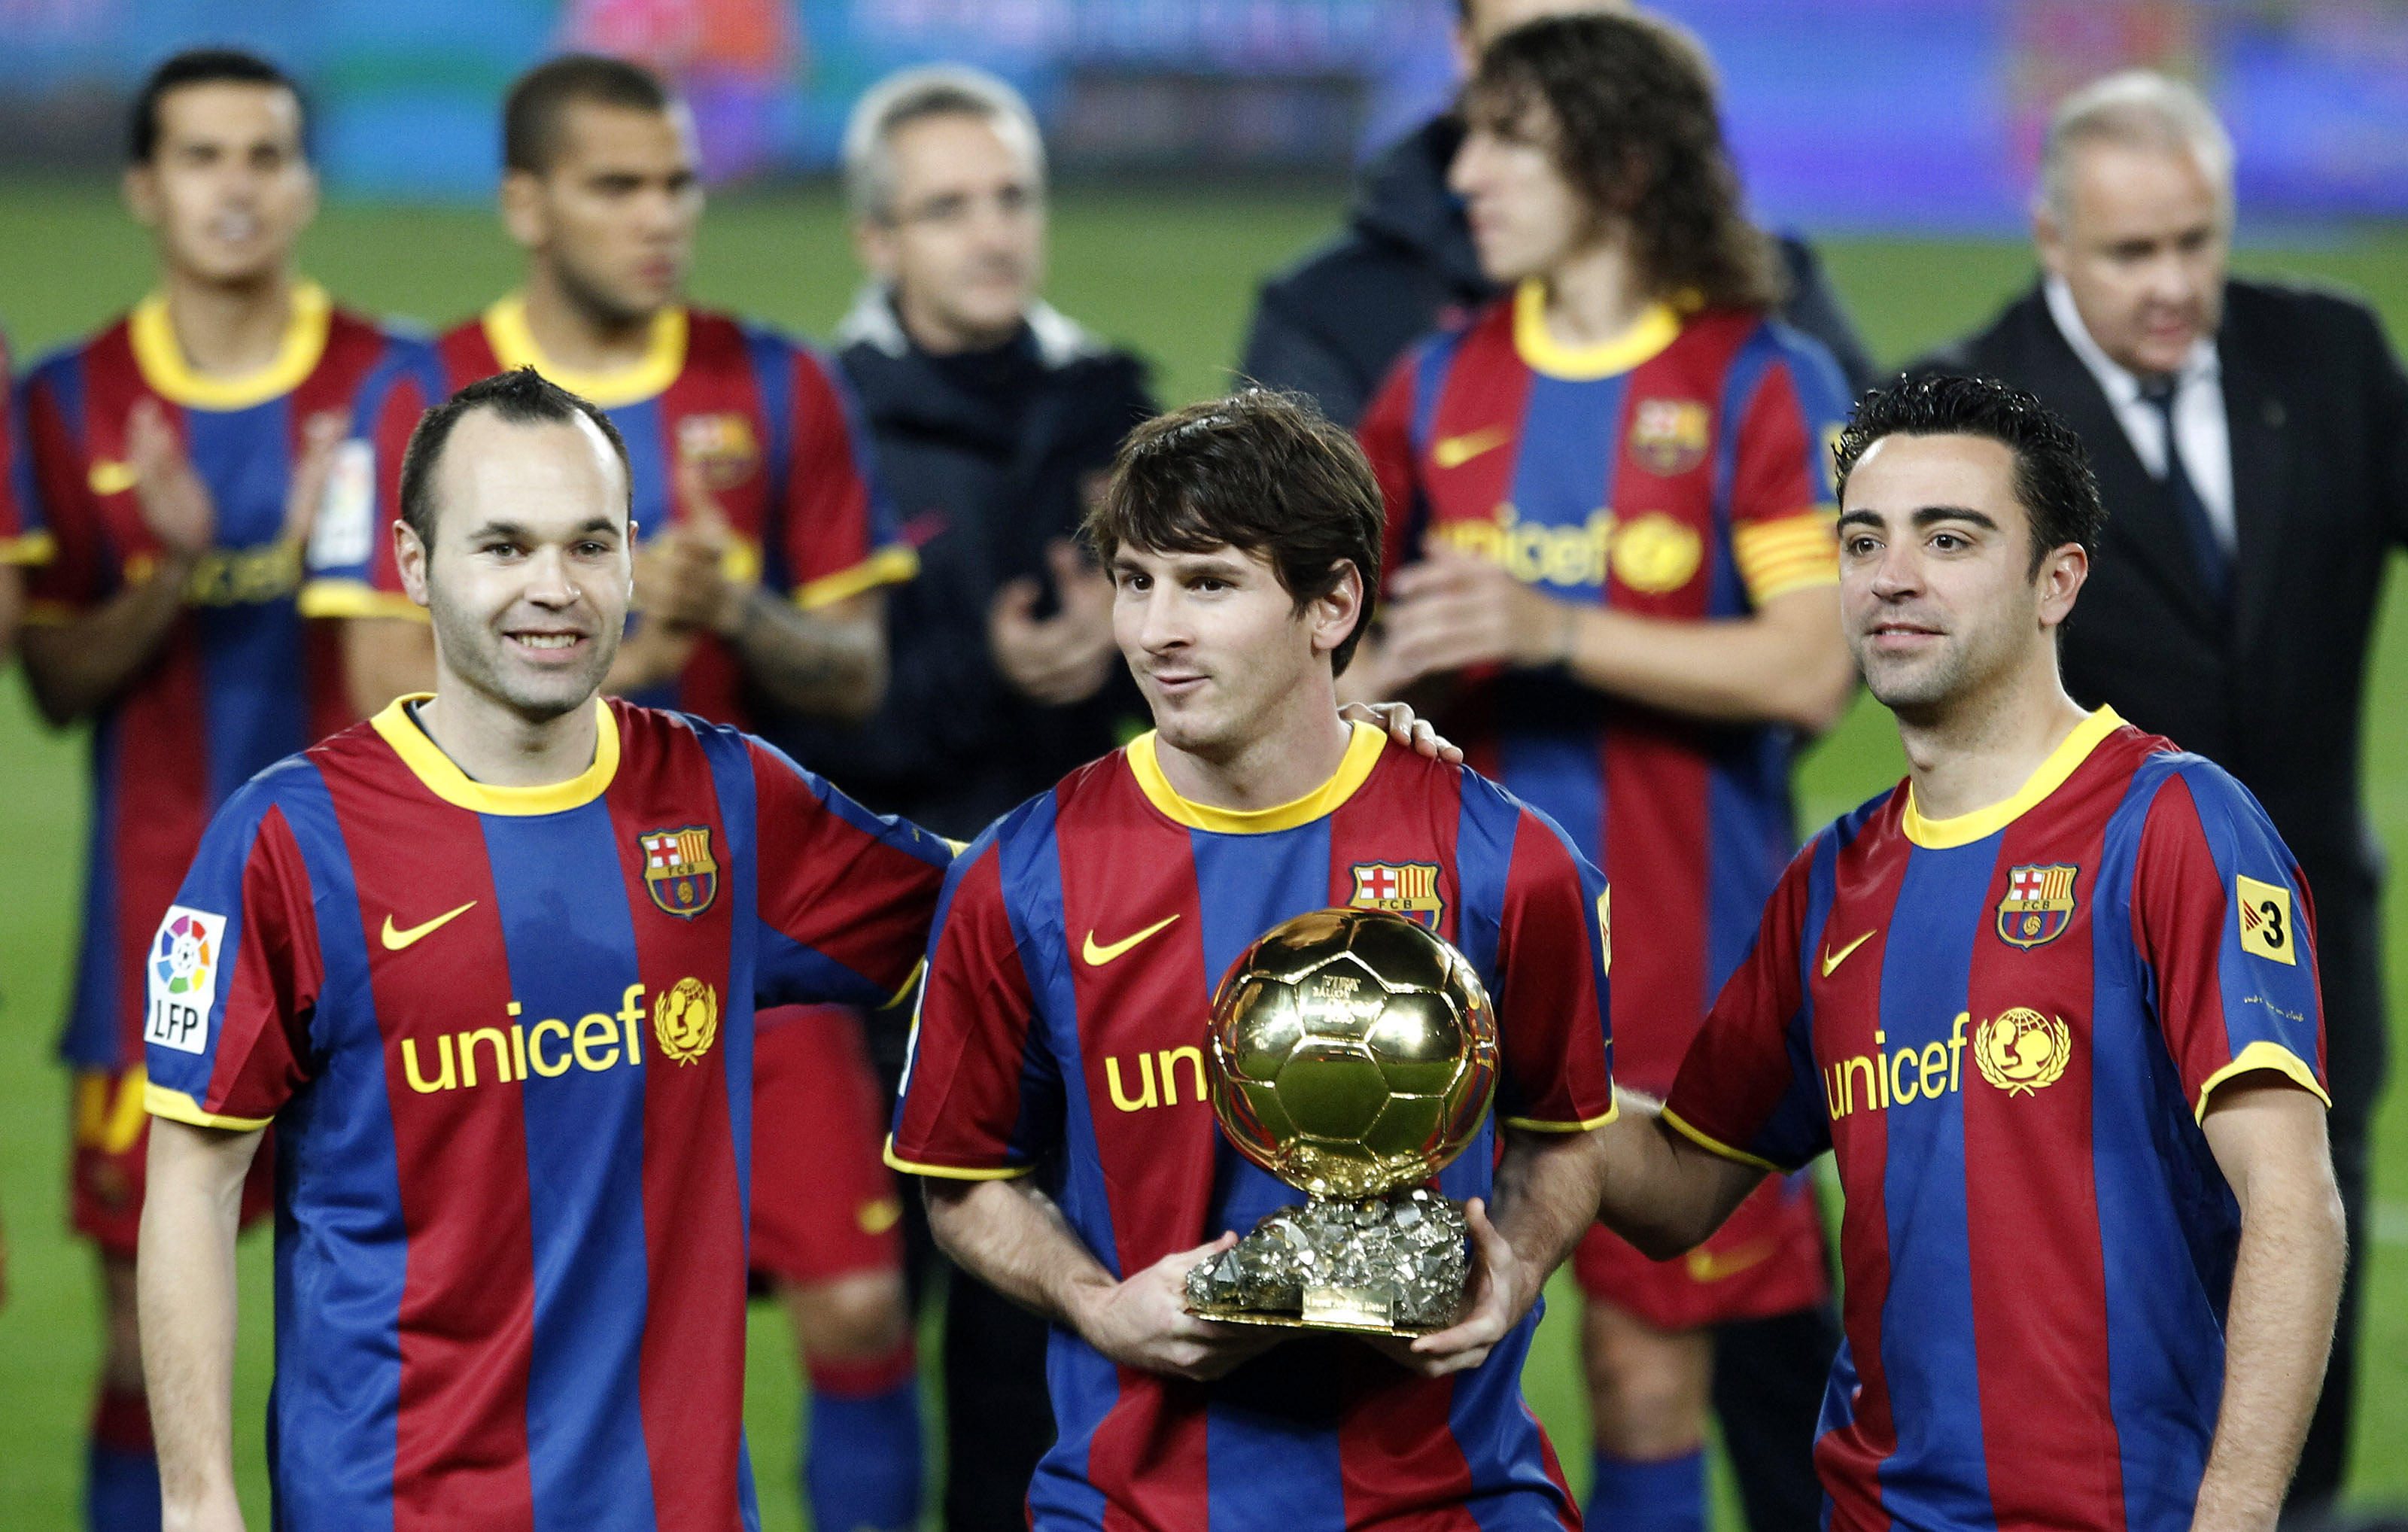 Barcelona's Lionel Messi poses with his Ballon d'Or trophy,  the World Player of the Year award, next to his teammates Andres Iniesta (L) and Xavi Hernandez before their Spanish King's Cup soccer match against Real Betis at Nou Camp stadium in Barcelona January 12, 2011. REUTERS/Gustau Nacarino(SPAIN - Tags: SPORT SOCCER)